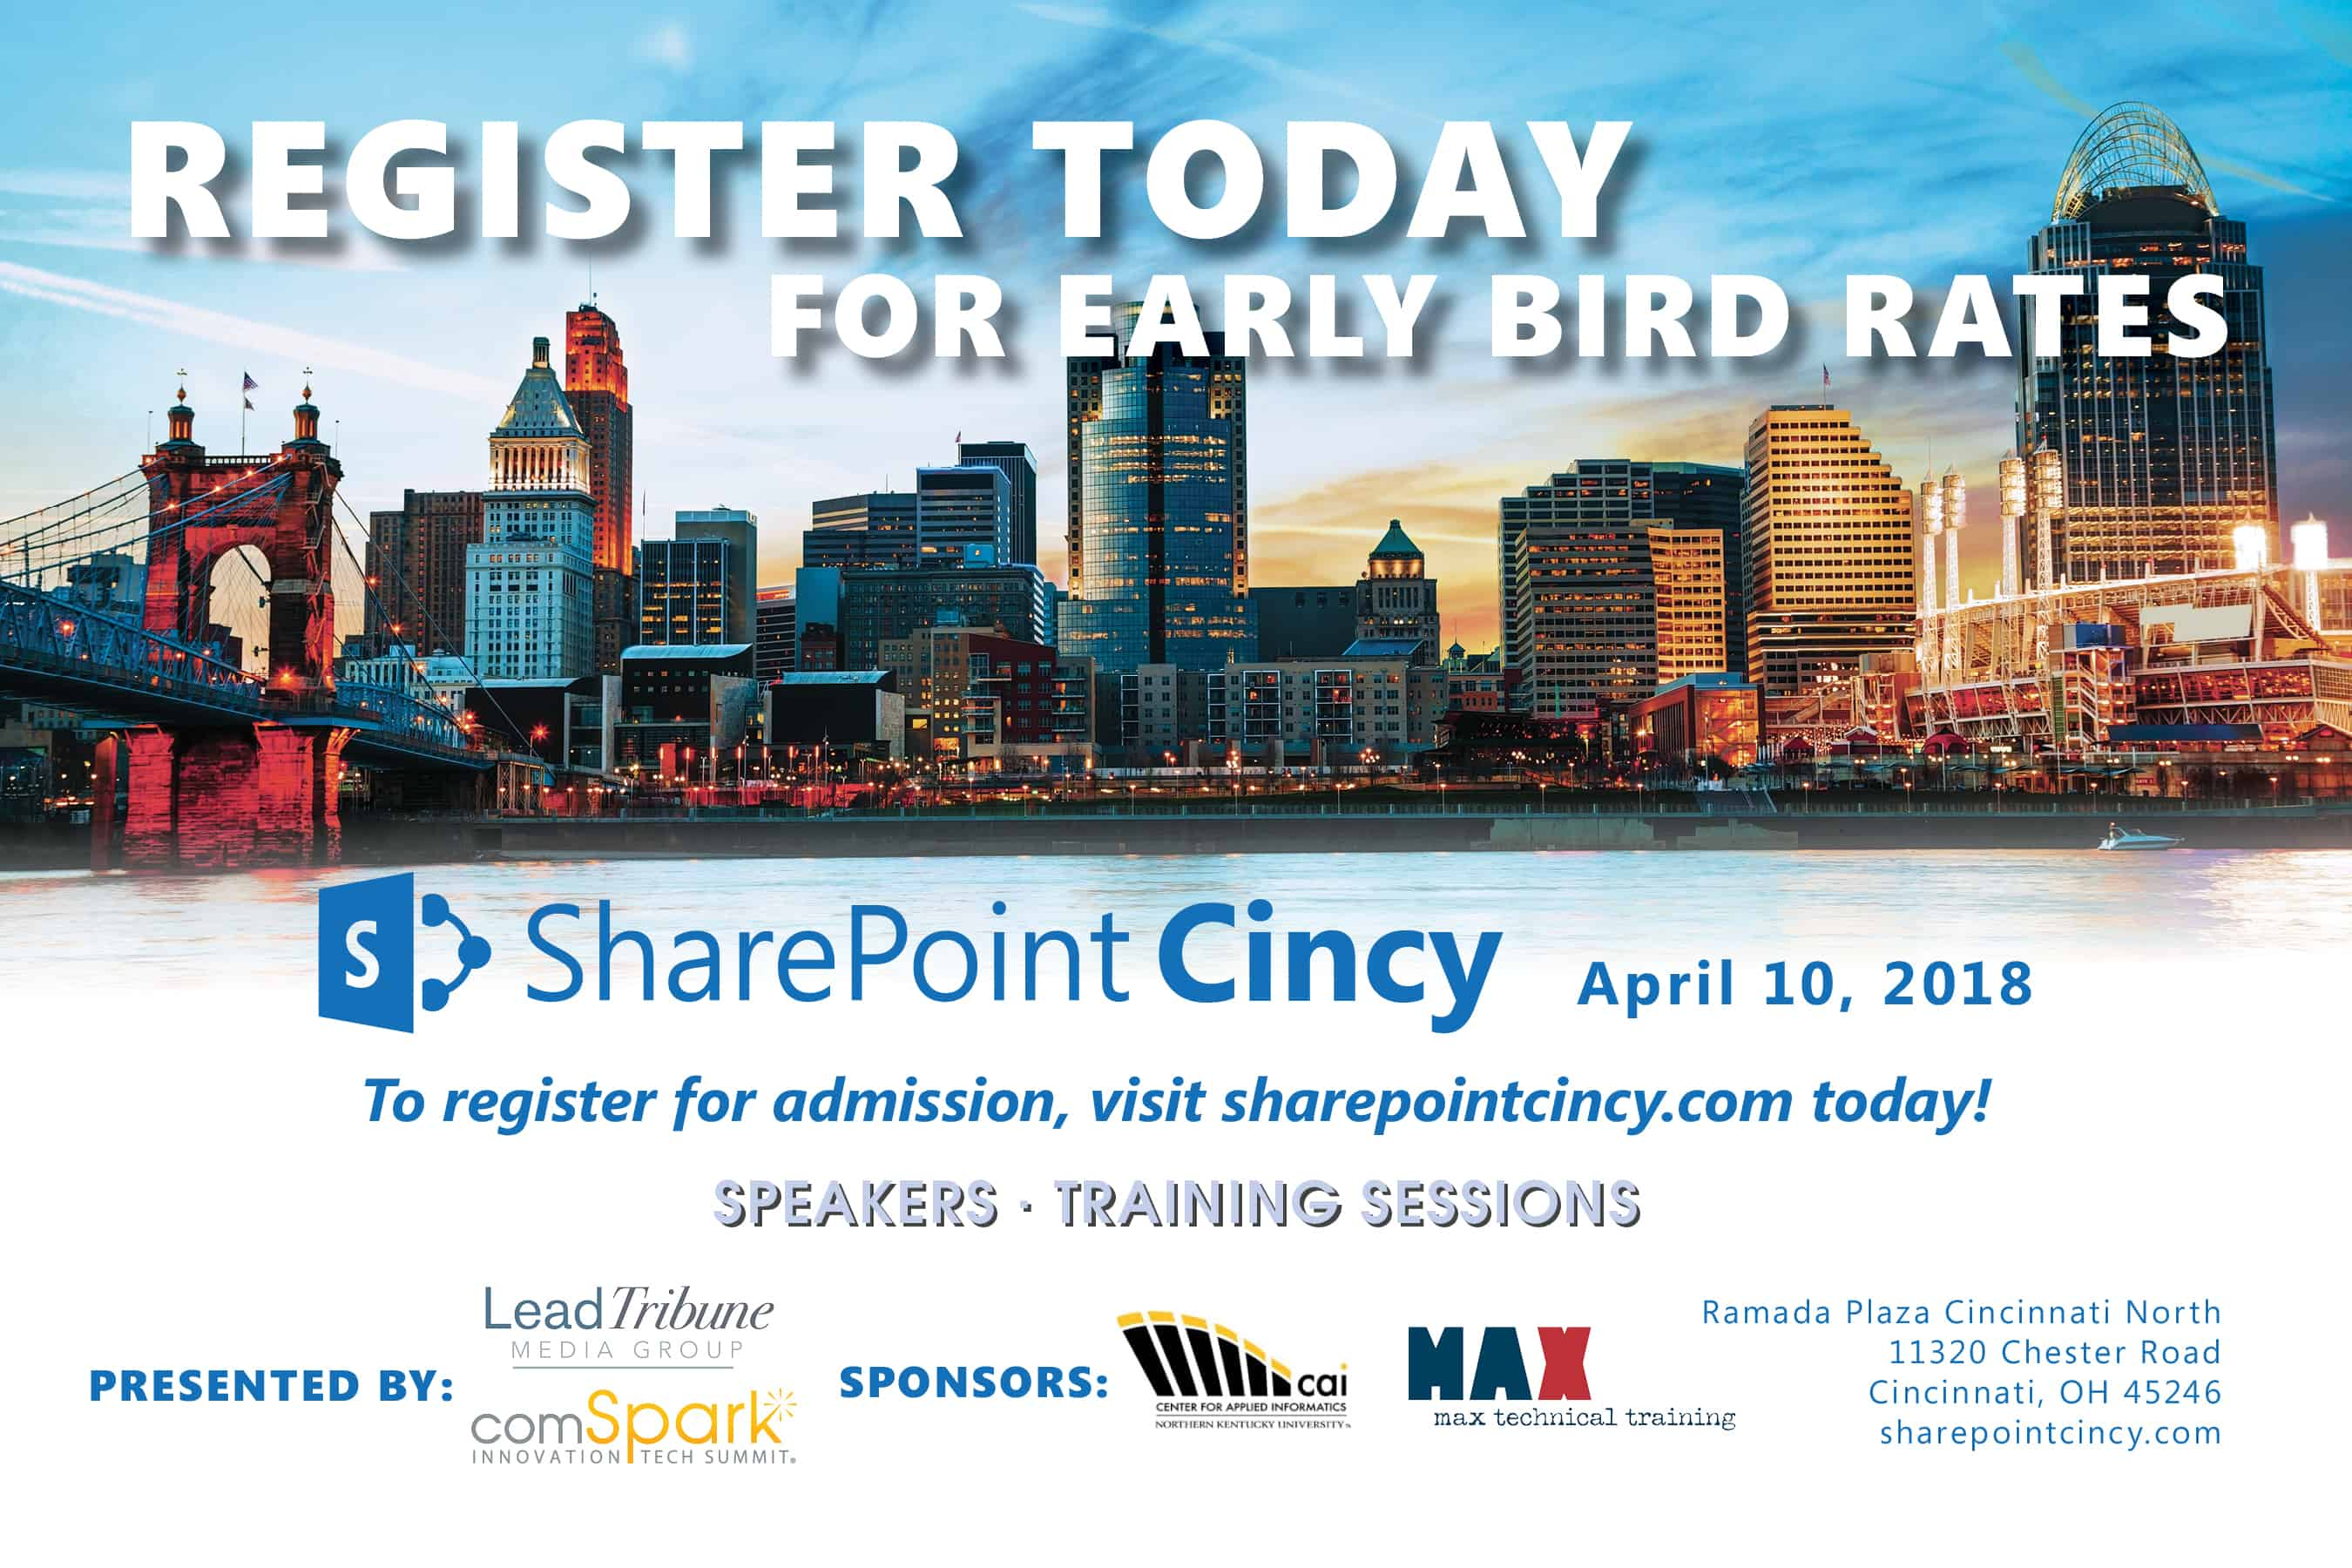 SharePoint Cincy 2018 Conference - MAX Technical Training